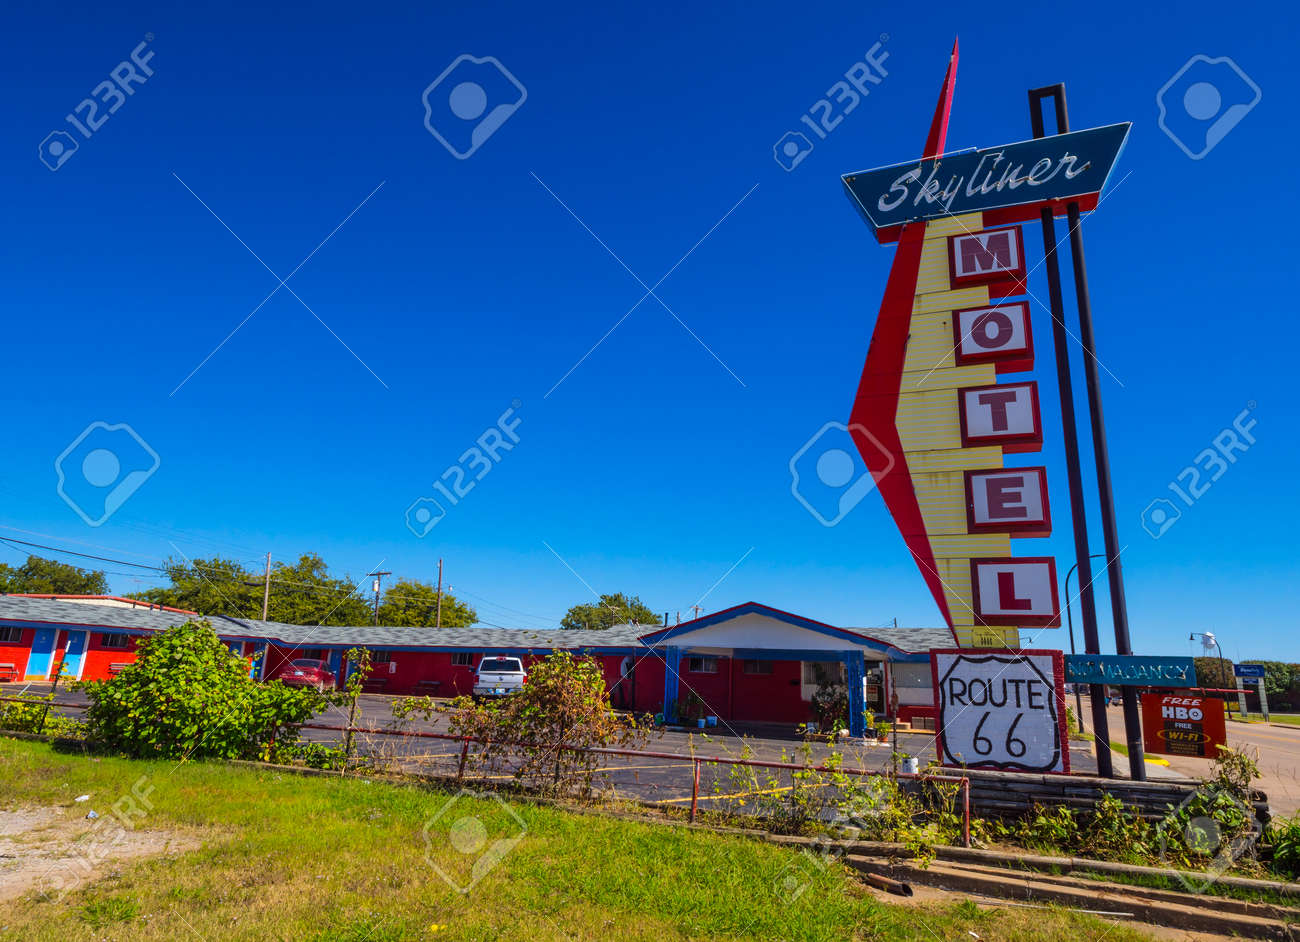 Stylish Skyliner Motel At Route 66 - STROUD - OKLAHOMA - OCTOBER ...